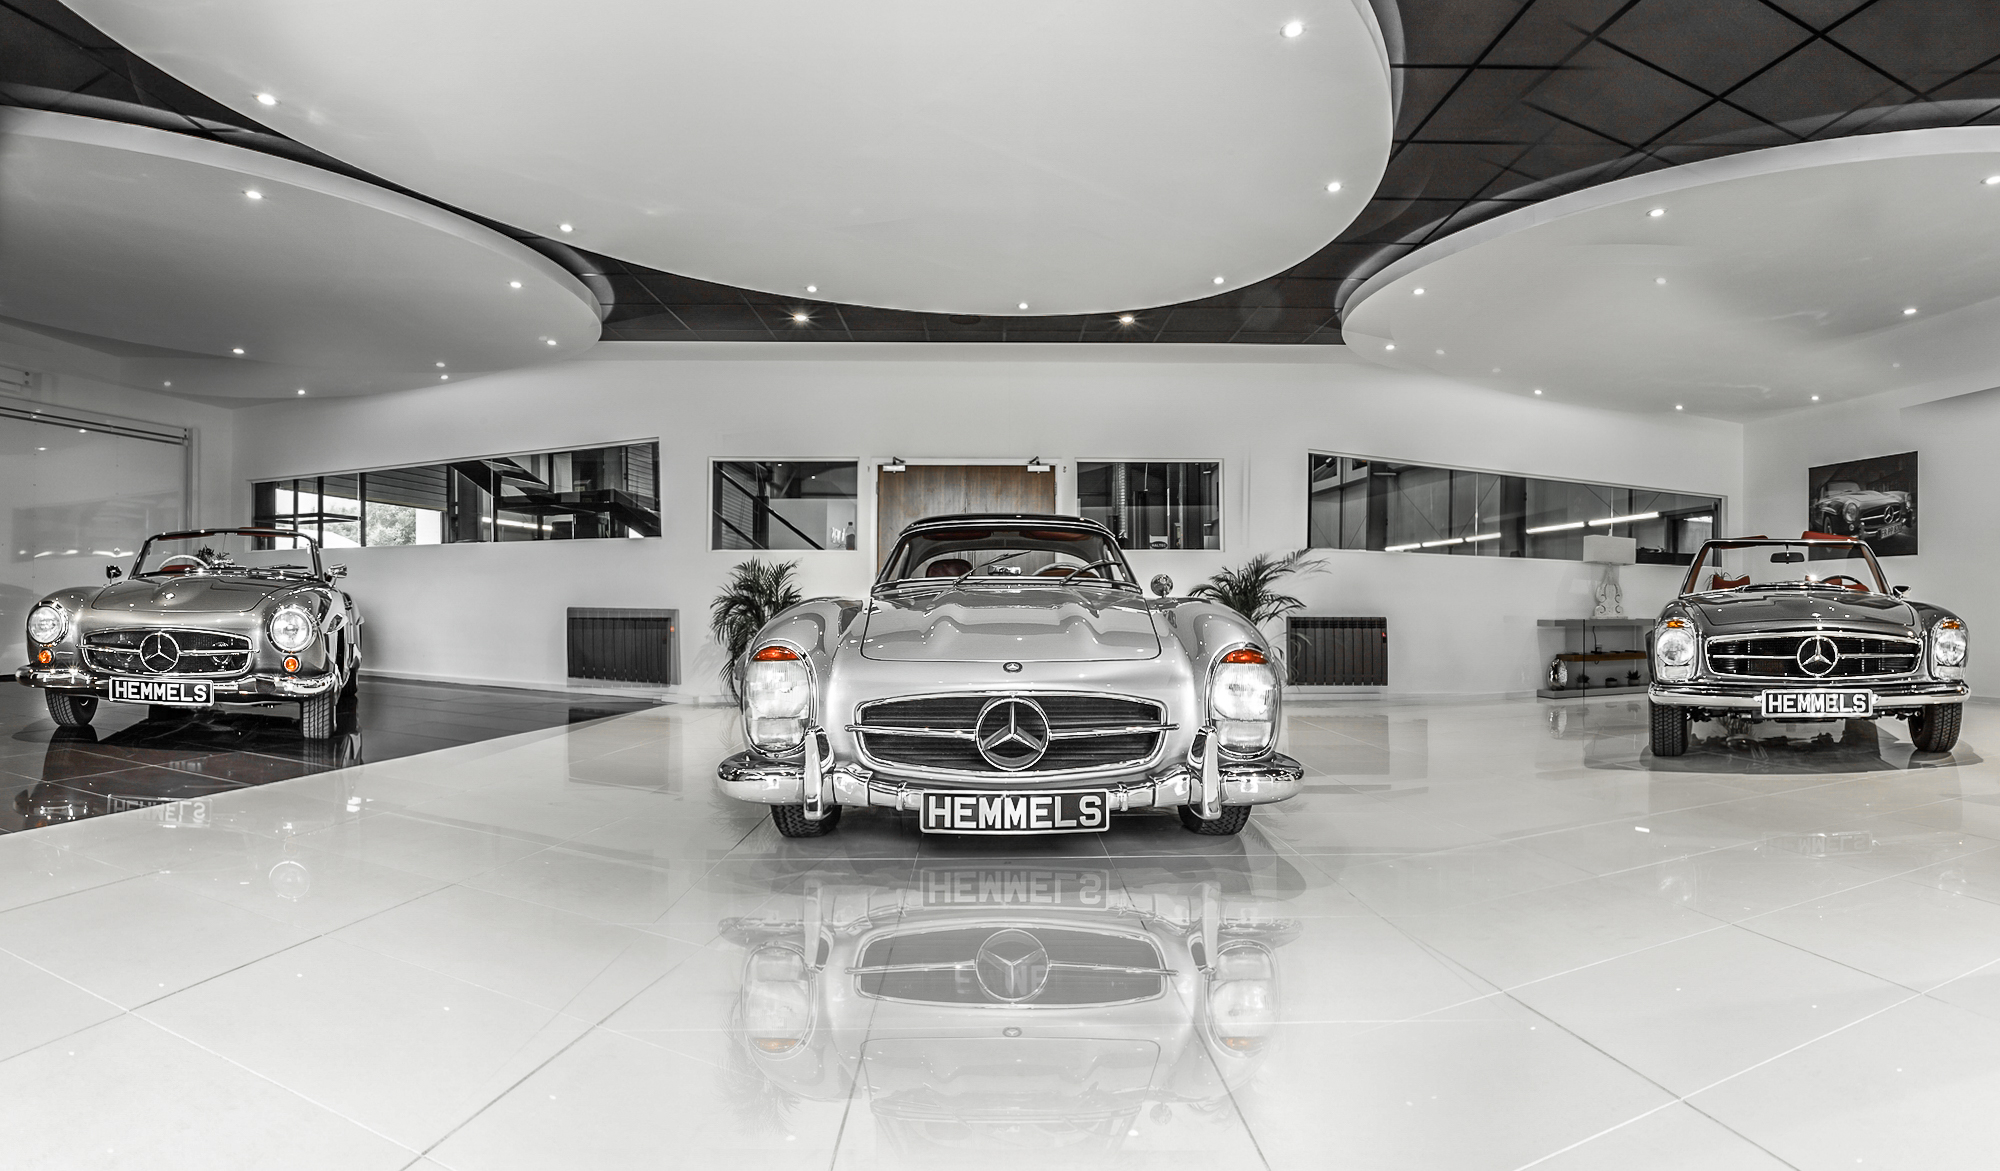 Mercedes 300SL, 280SL and 190SL in the Hemmels showroom